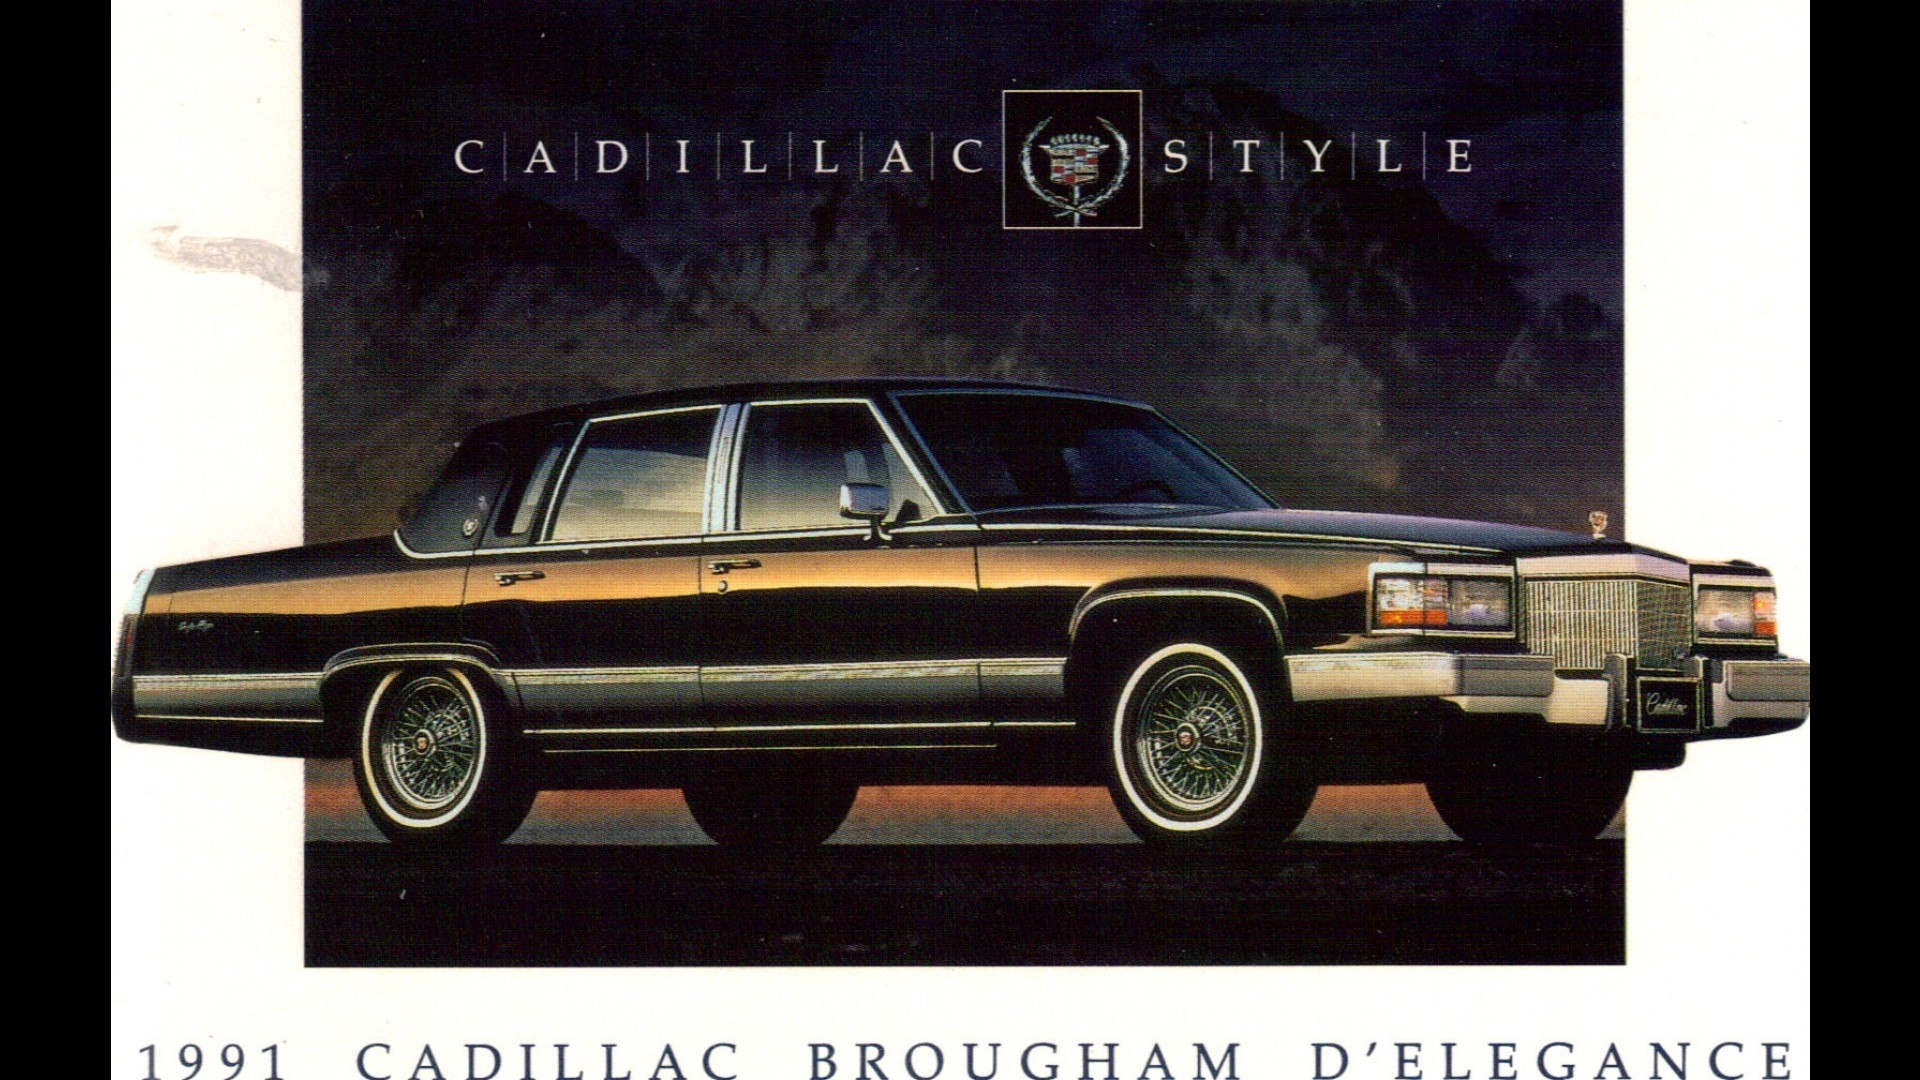 17 All New 2020 Cadillac Fleetwood Series 75 Price and Review